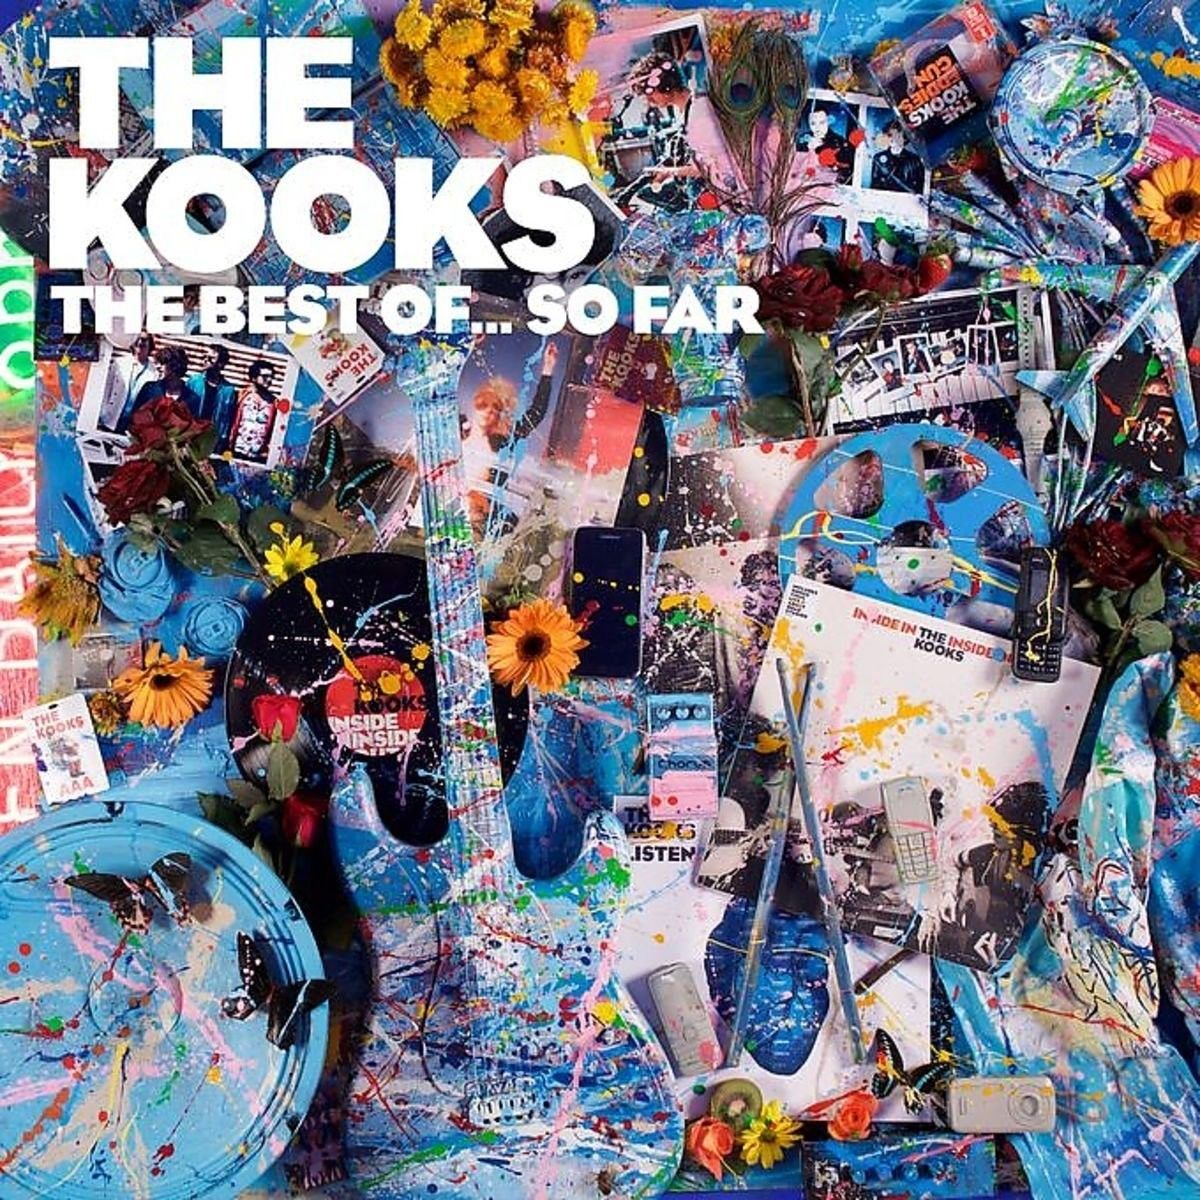 THE KOOKS - THE BEST OF CD